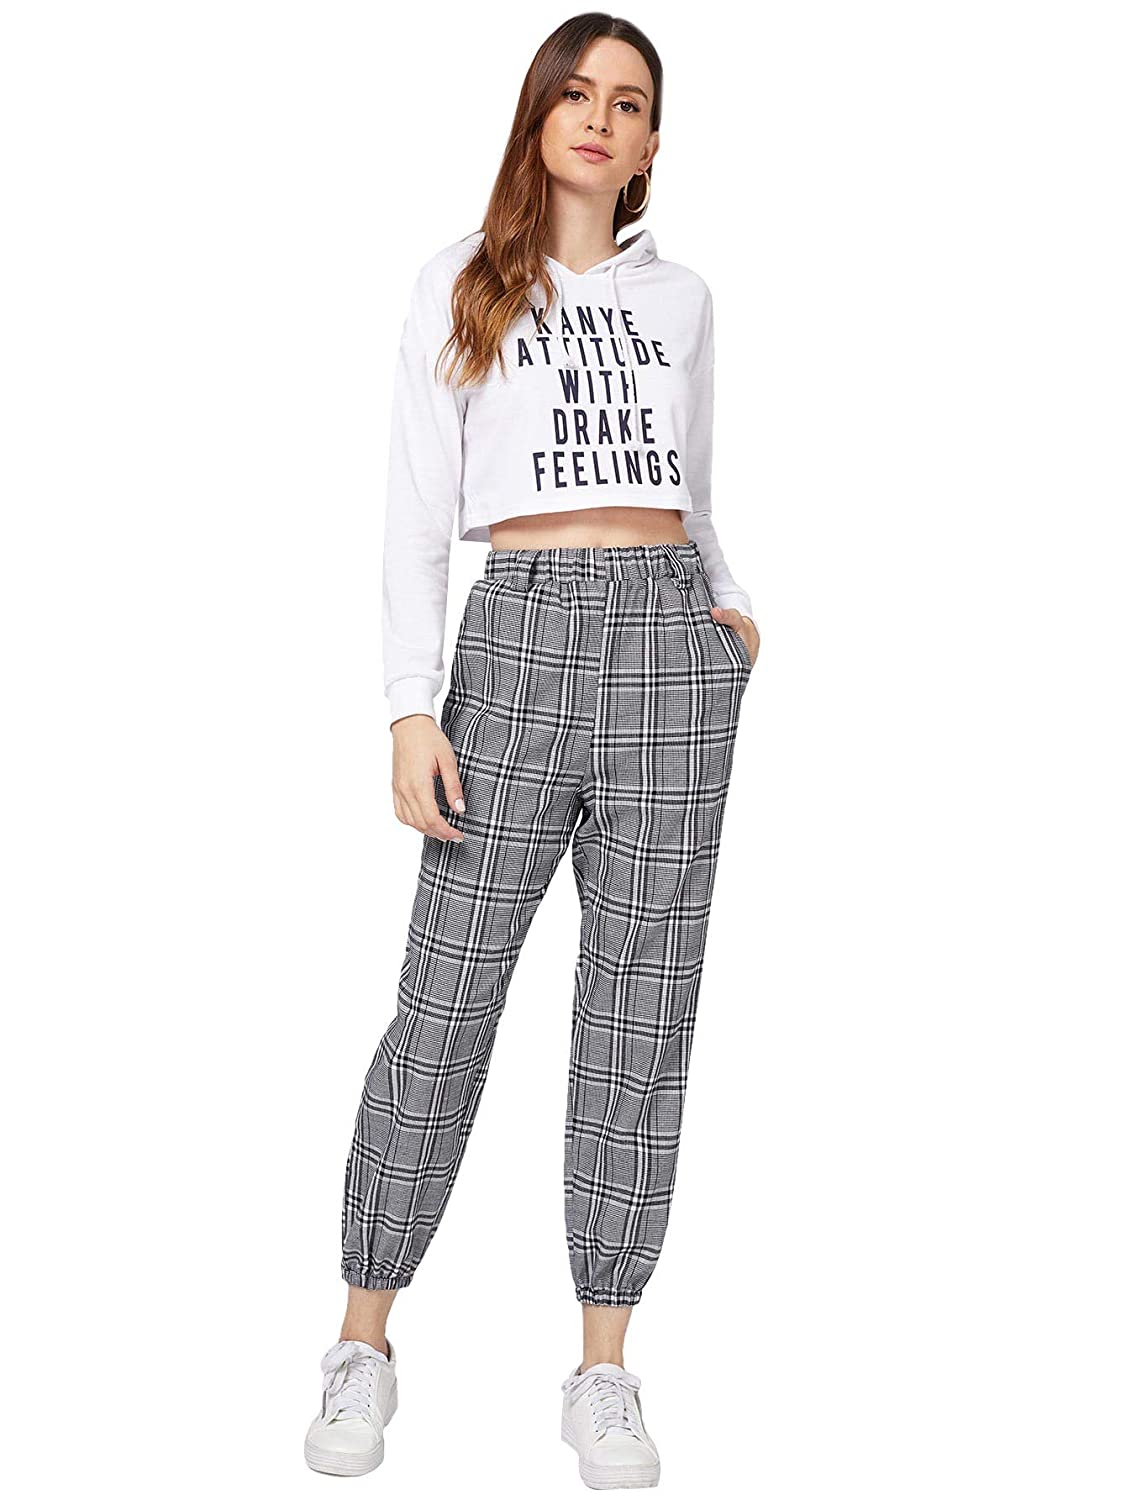 8056d6946c1b SheIn Women's Casual Side Pockets Elastic Waist Plaid Pants at Amazon  Women's Clothing store: